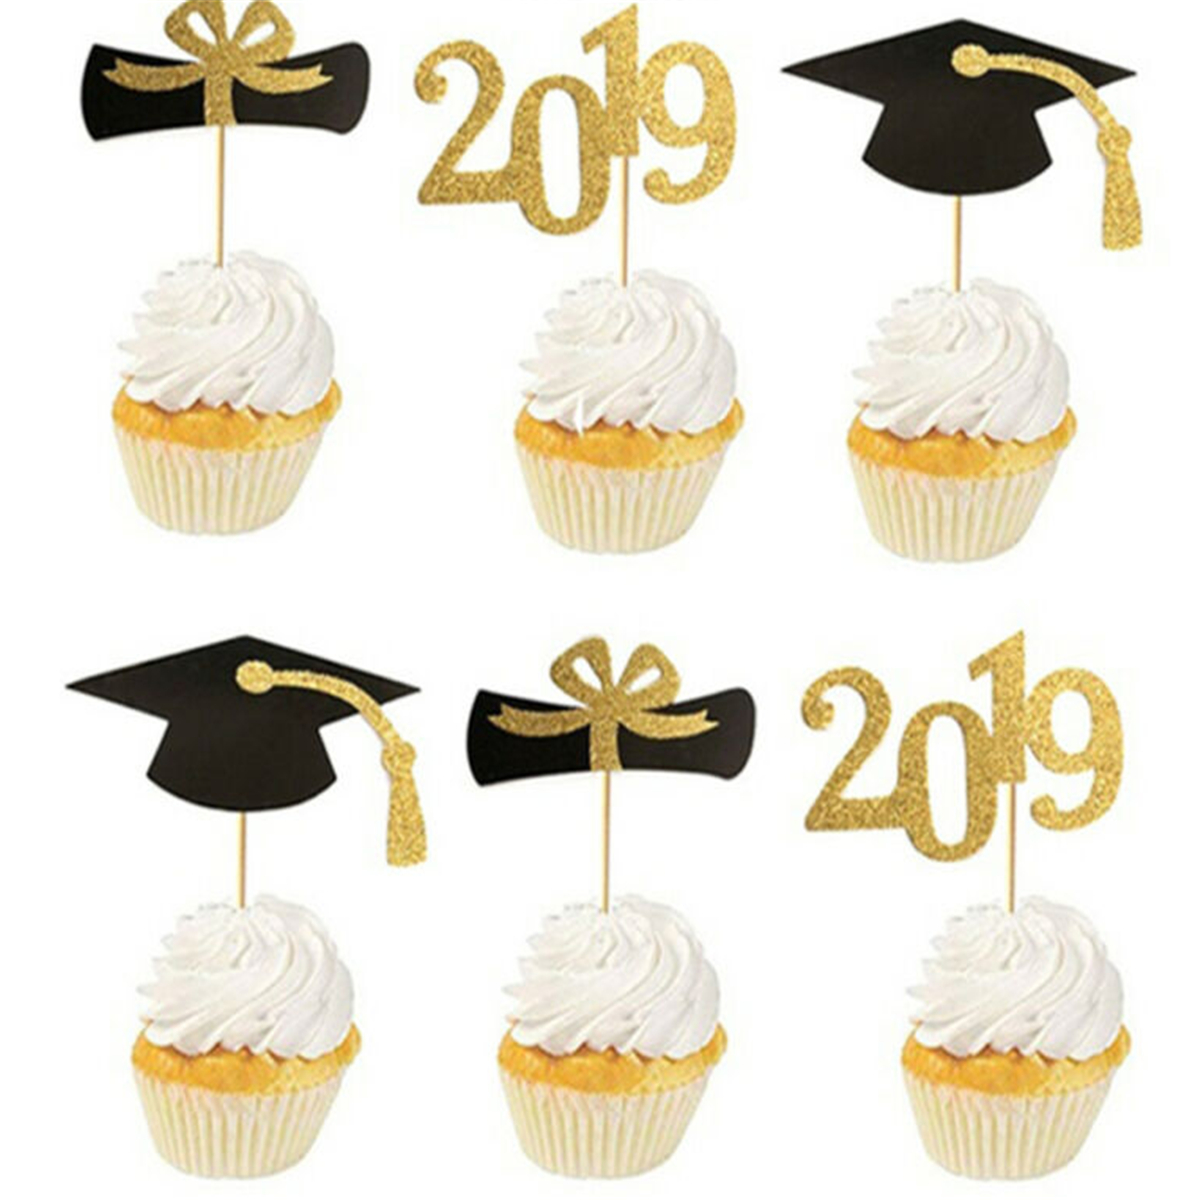 12pc/Set 2019 Graduation DIY Craft Food Sticks Cupcake ...